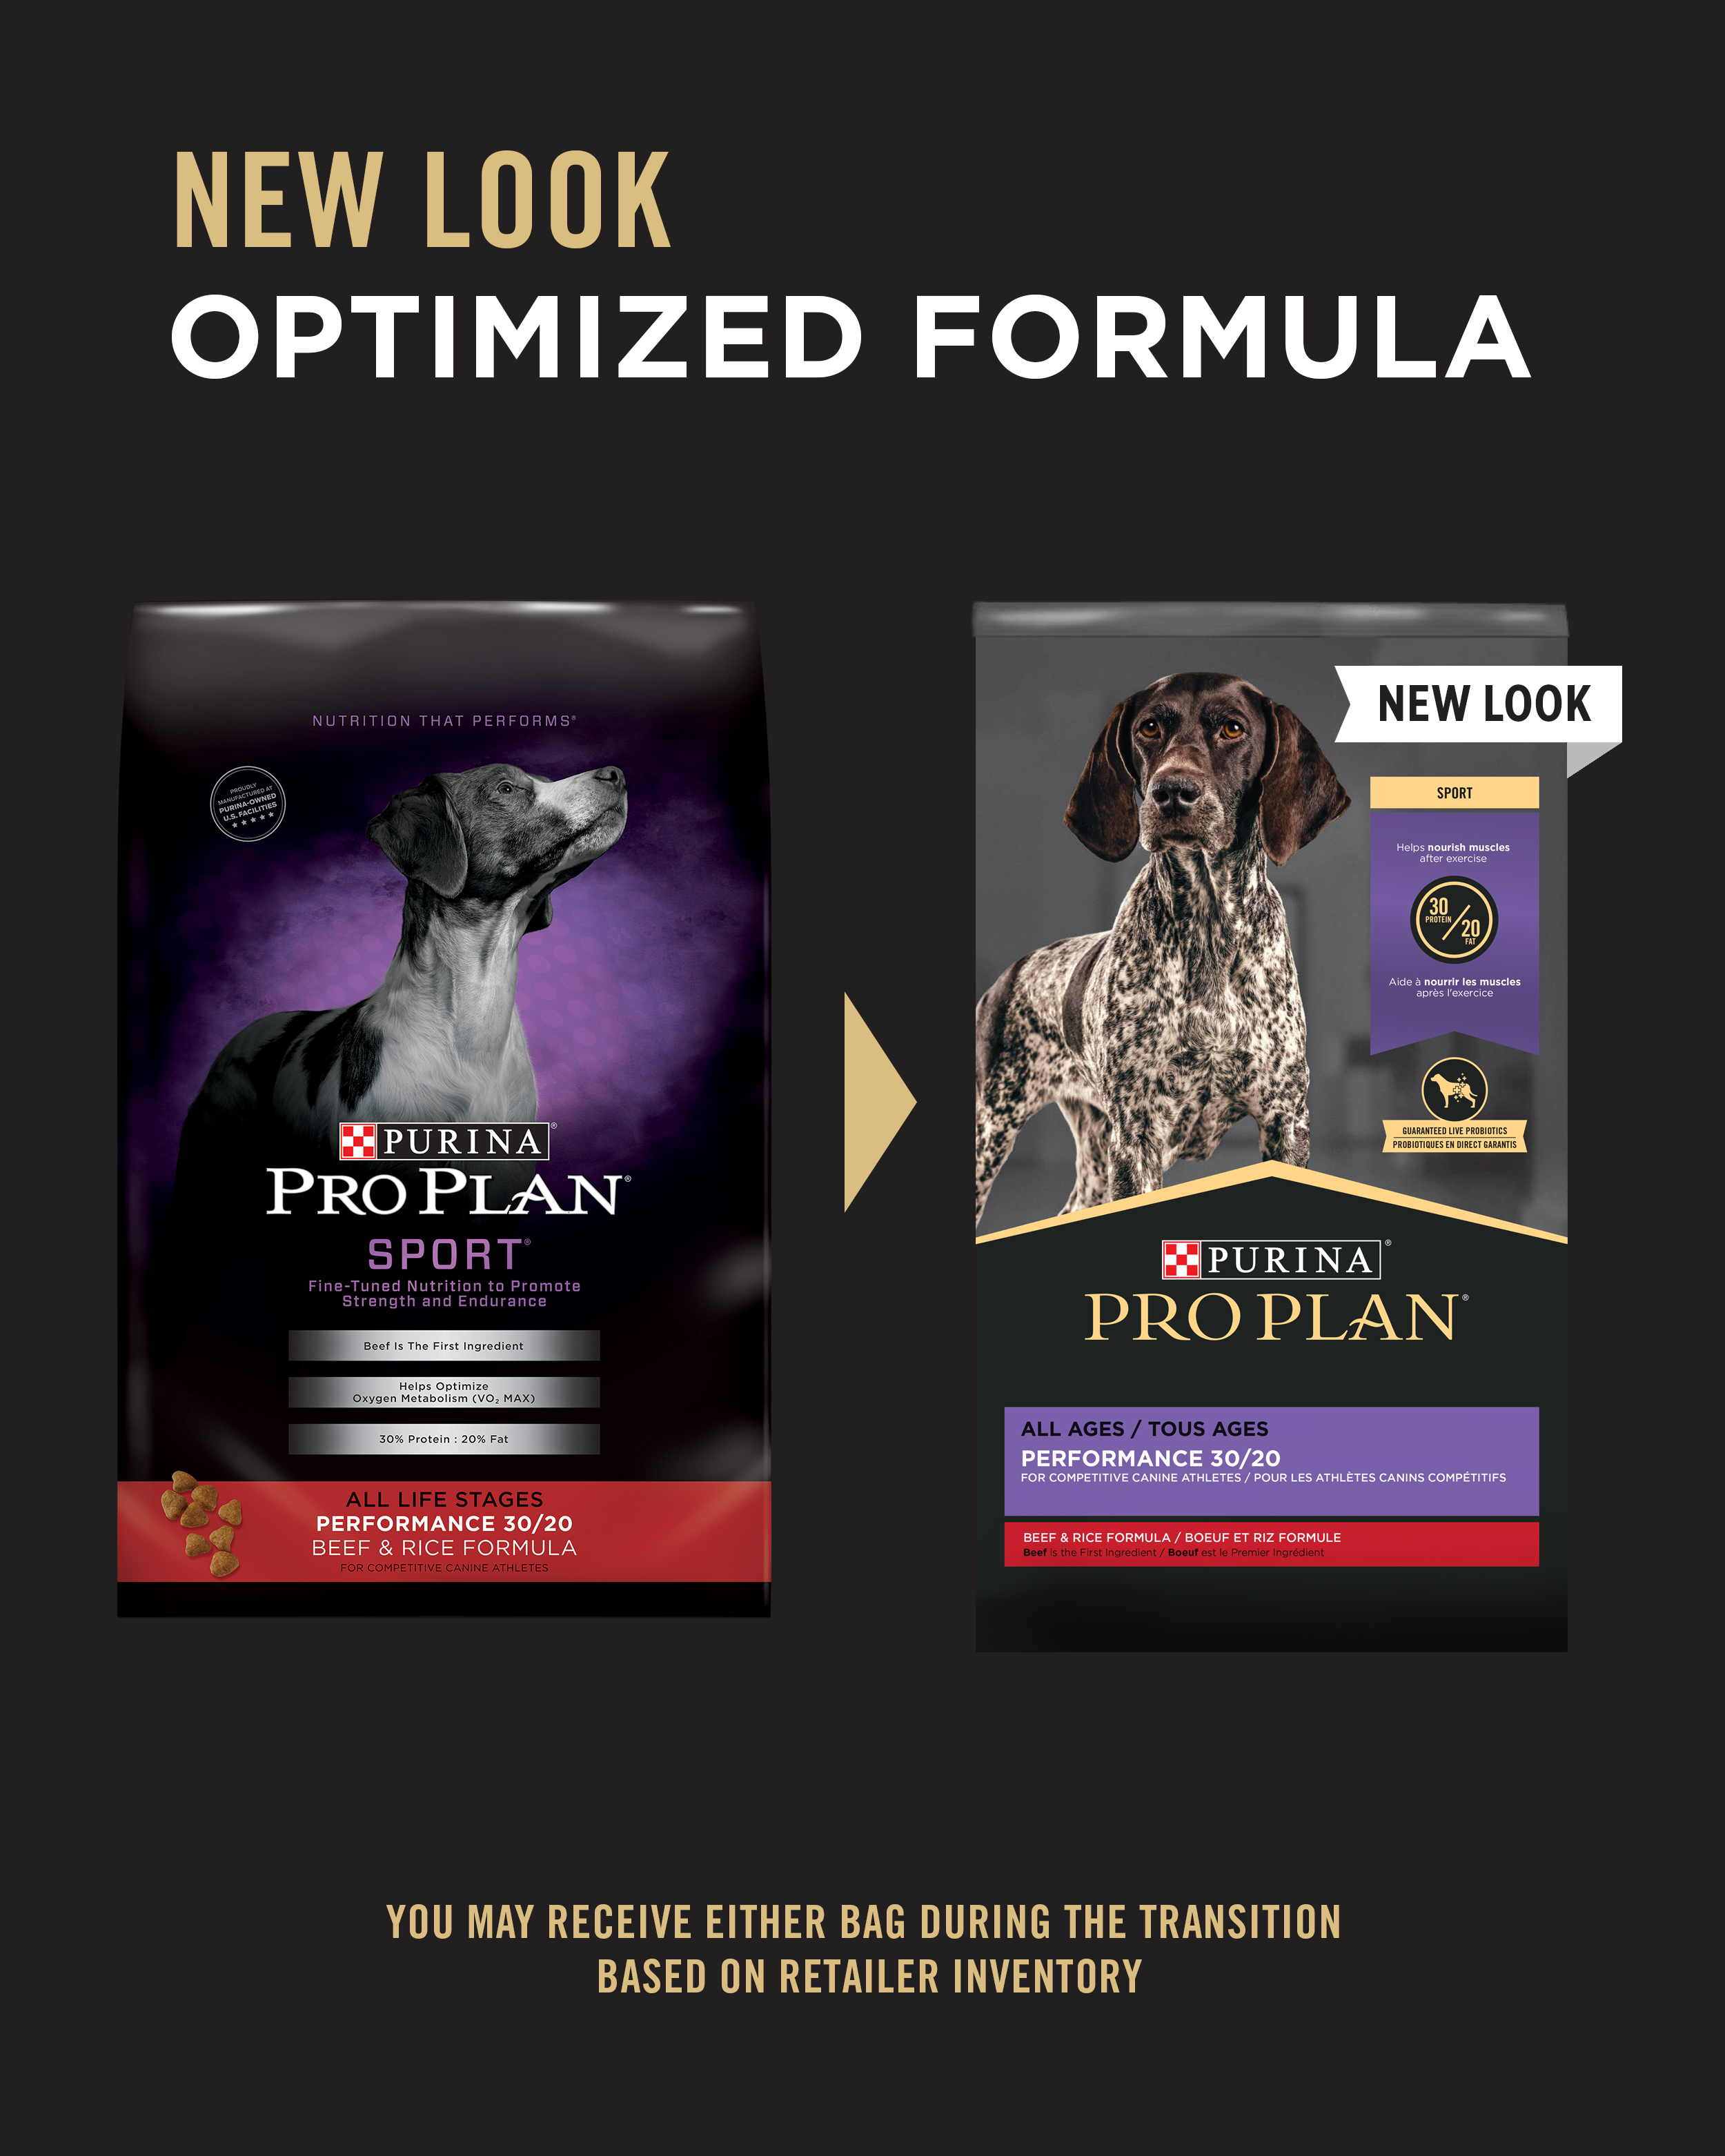 Purina Pro Plan Sport Performance 30/20 Beef & Rice Formula